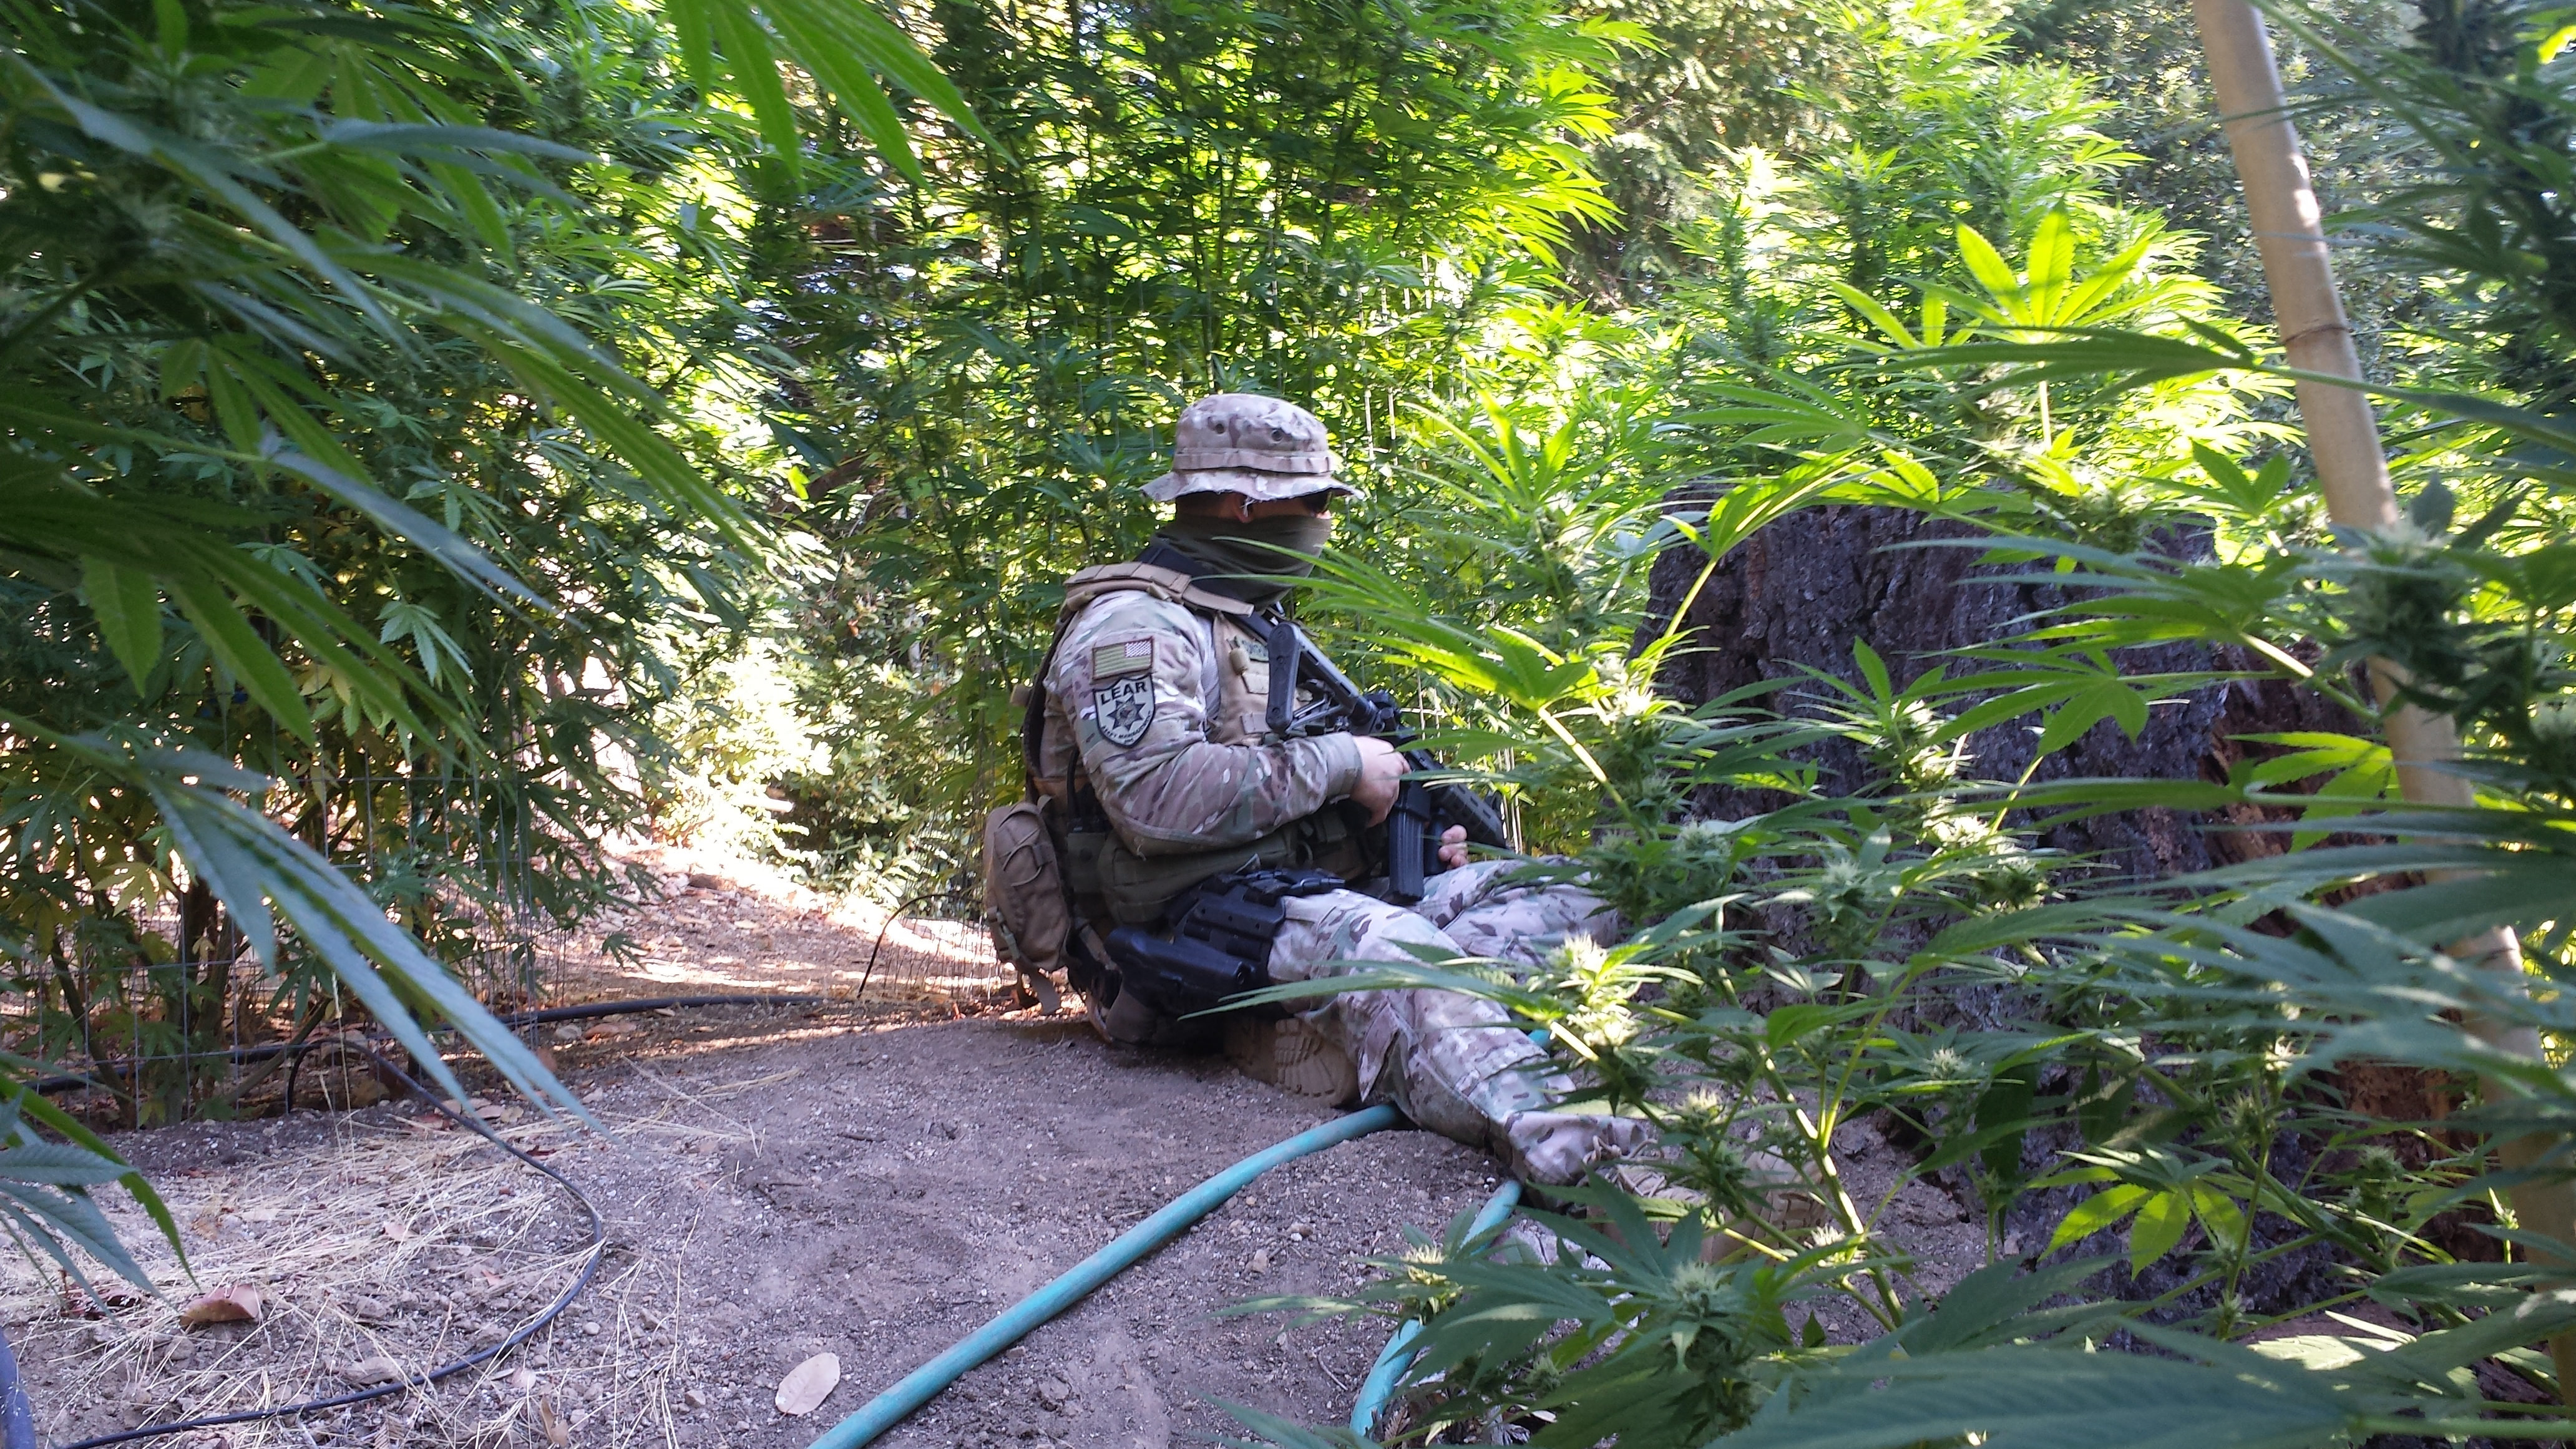 Lear personnel during a raid on an illegal trespassing marijuana operation.